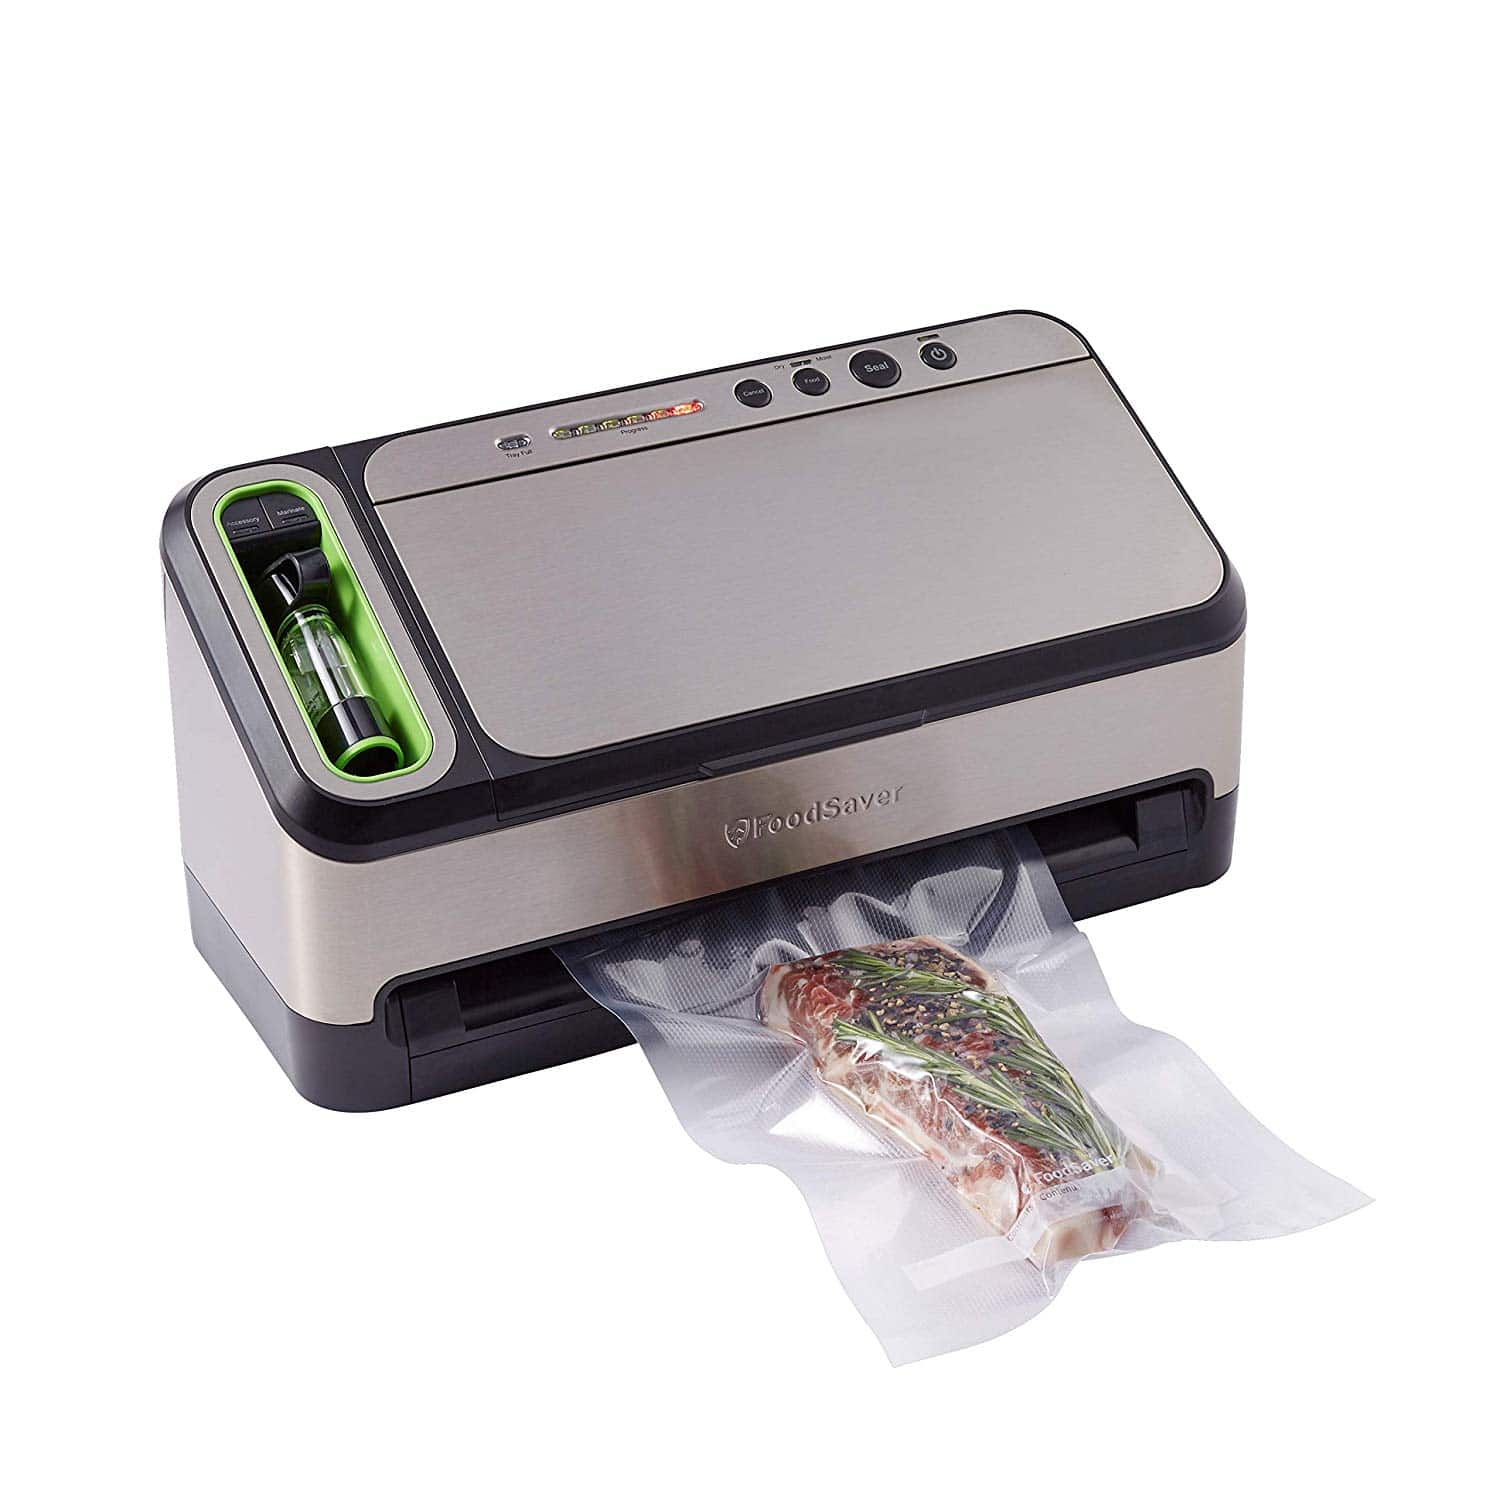 FoodSaver Vacuum Sealer 4800 Series 2-in-1 System